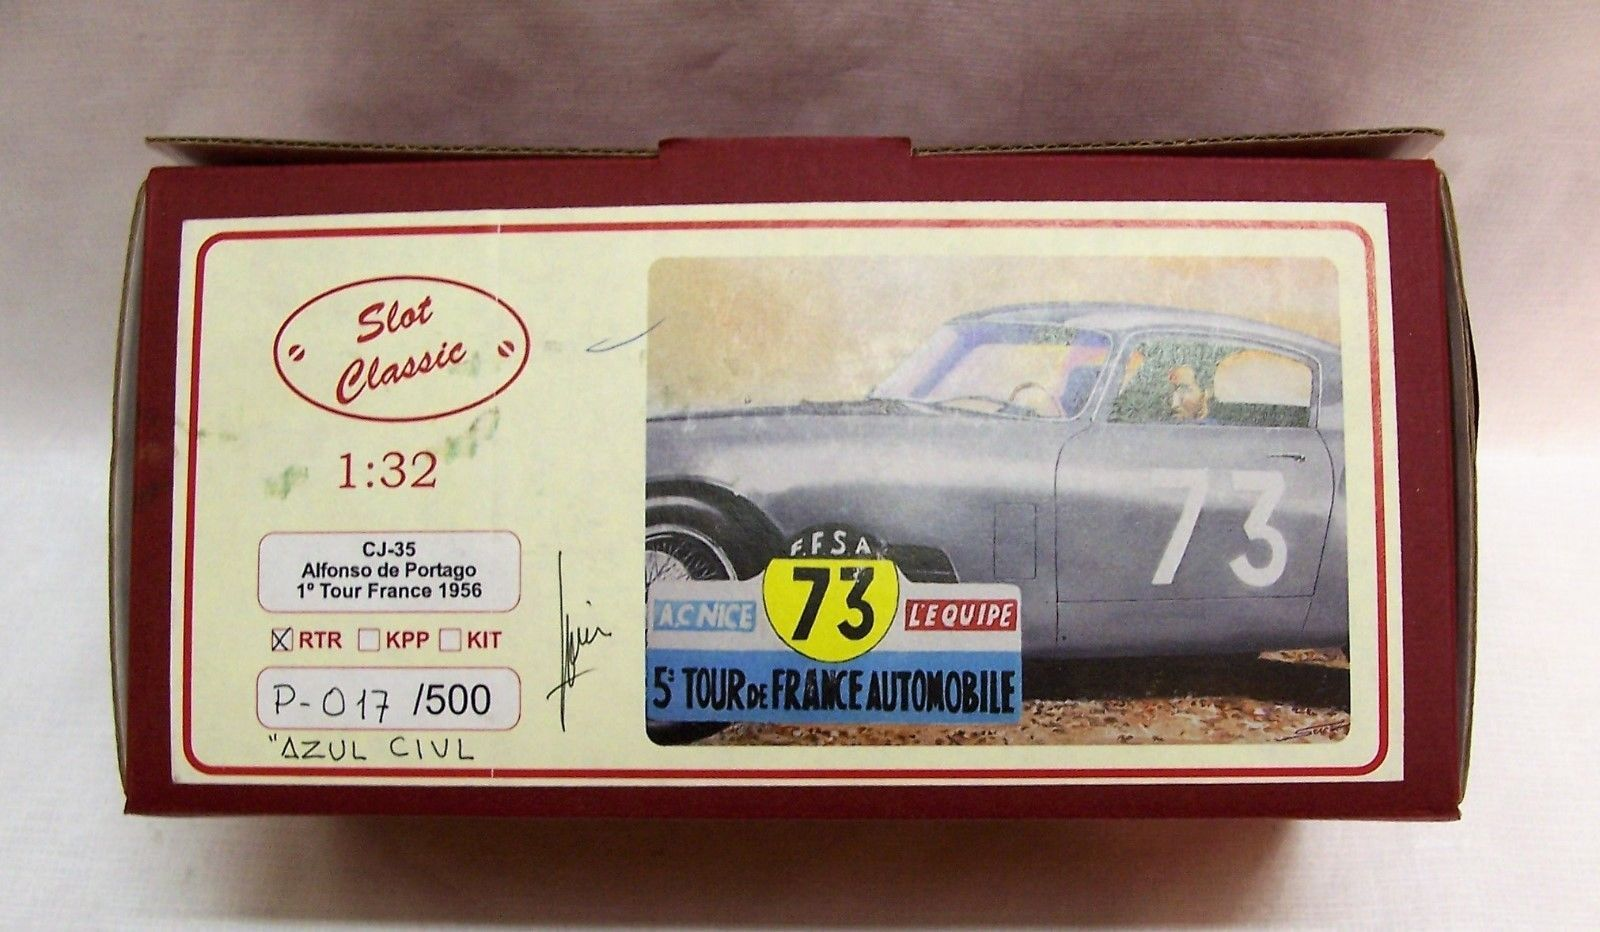 1/32 Slot Car Slot Classic CJ 35 Alfonso de Portago Tour De France 1956 Ferrari https://t.co/5CBsfgS0eh https://t.co/8UxNpY0WUi